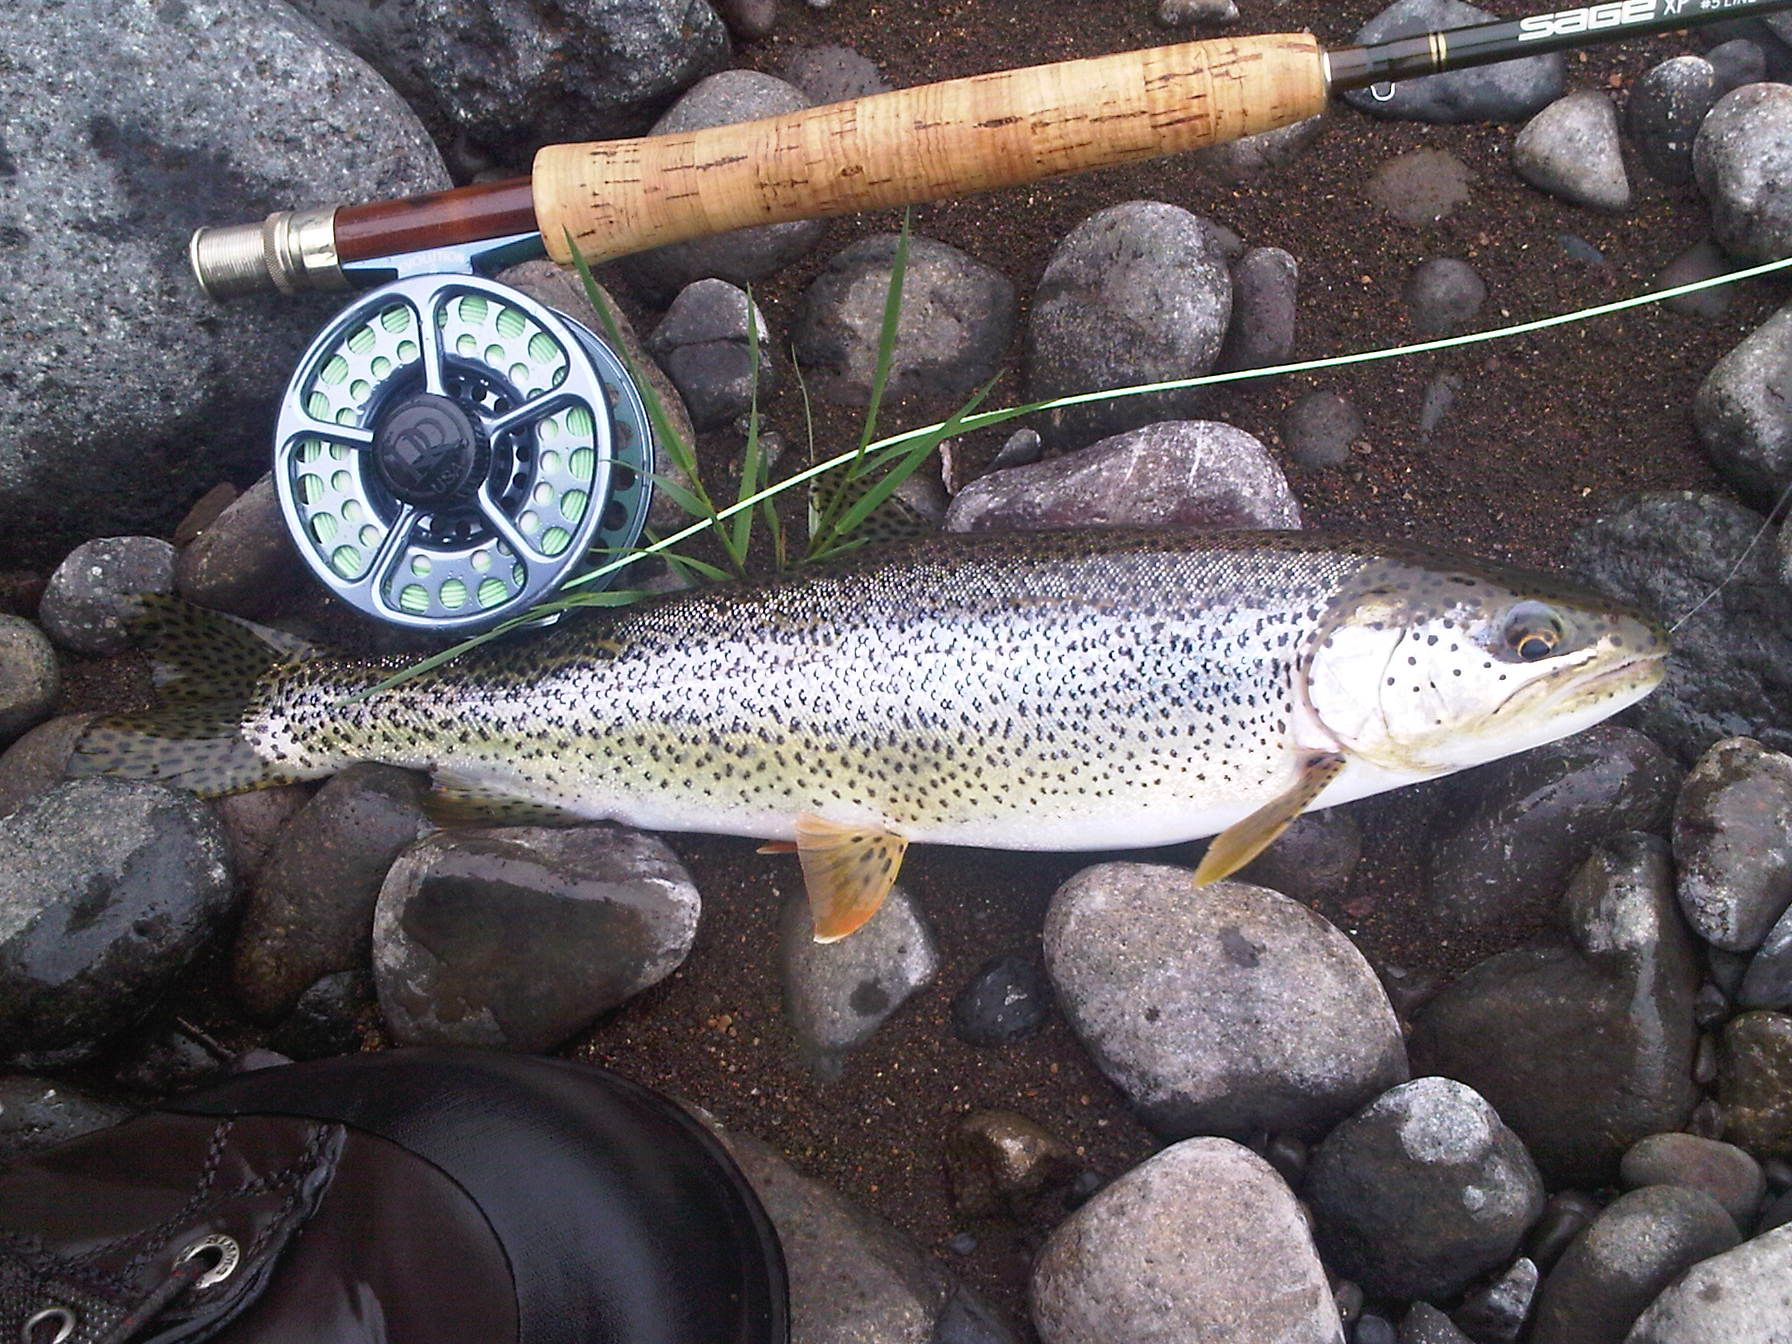 Nice Catch And Release Cutthroat Trout On The Wilson River Oregon 5wt 9 Sage Rod Ross Evolution Ii Reel Cutthroat Trout Trout Fish